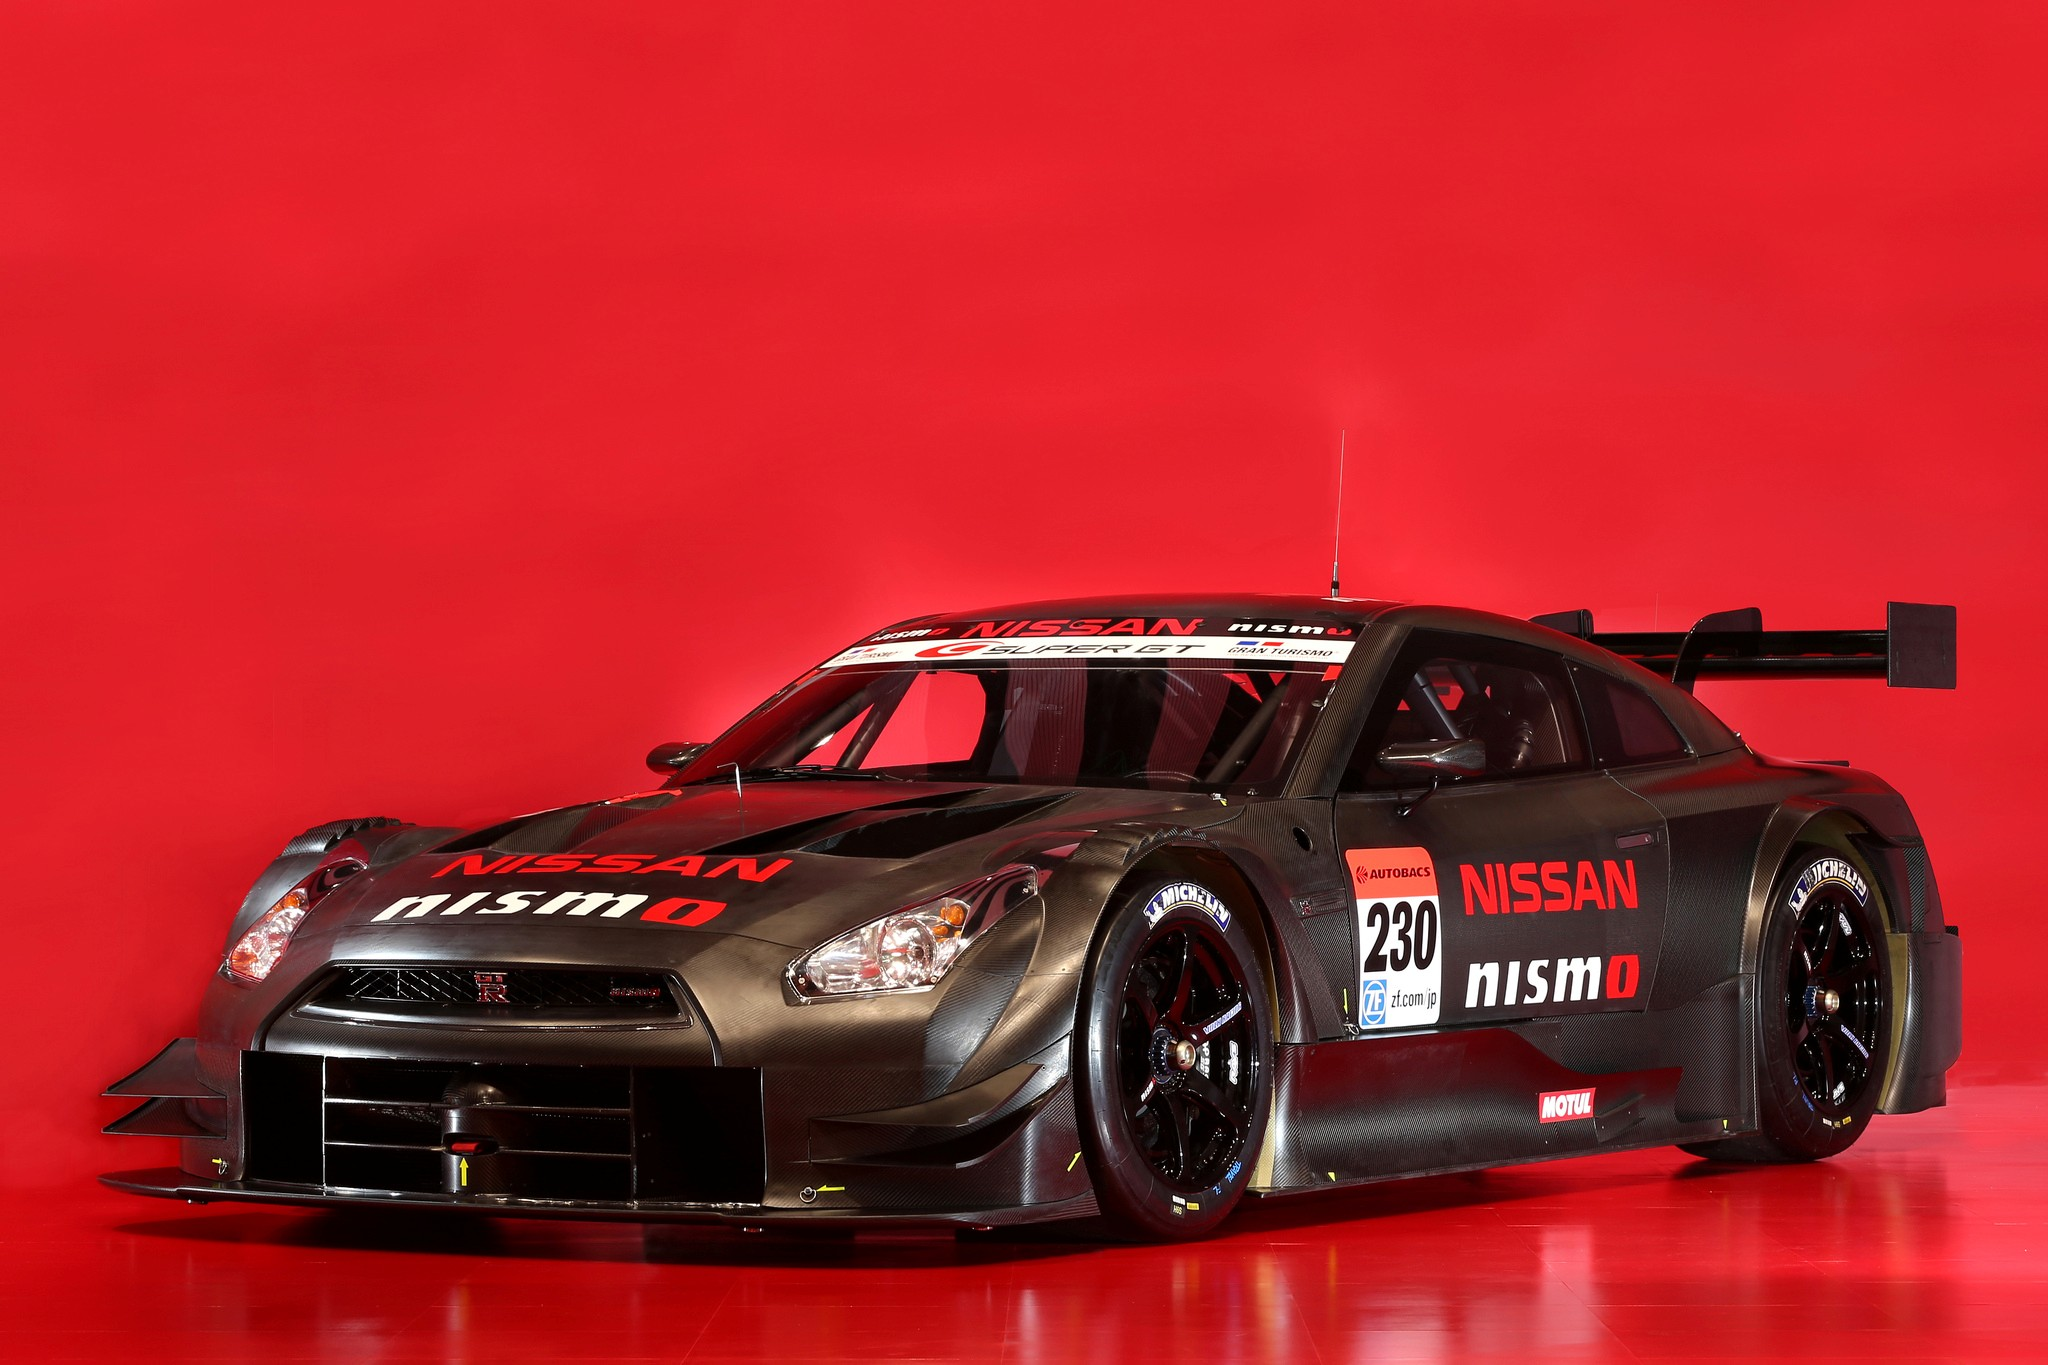 2019 Nissan GT R GT500 Race car photo - 1